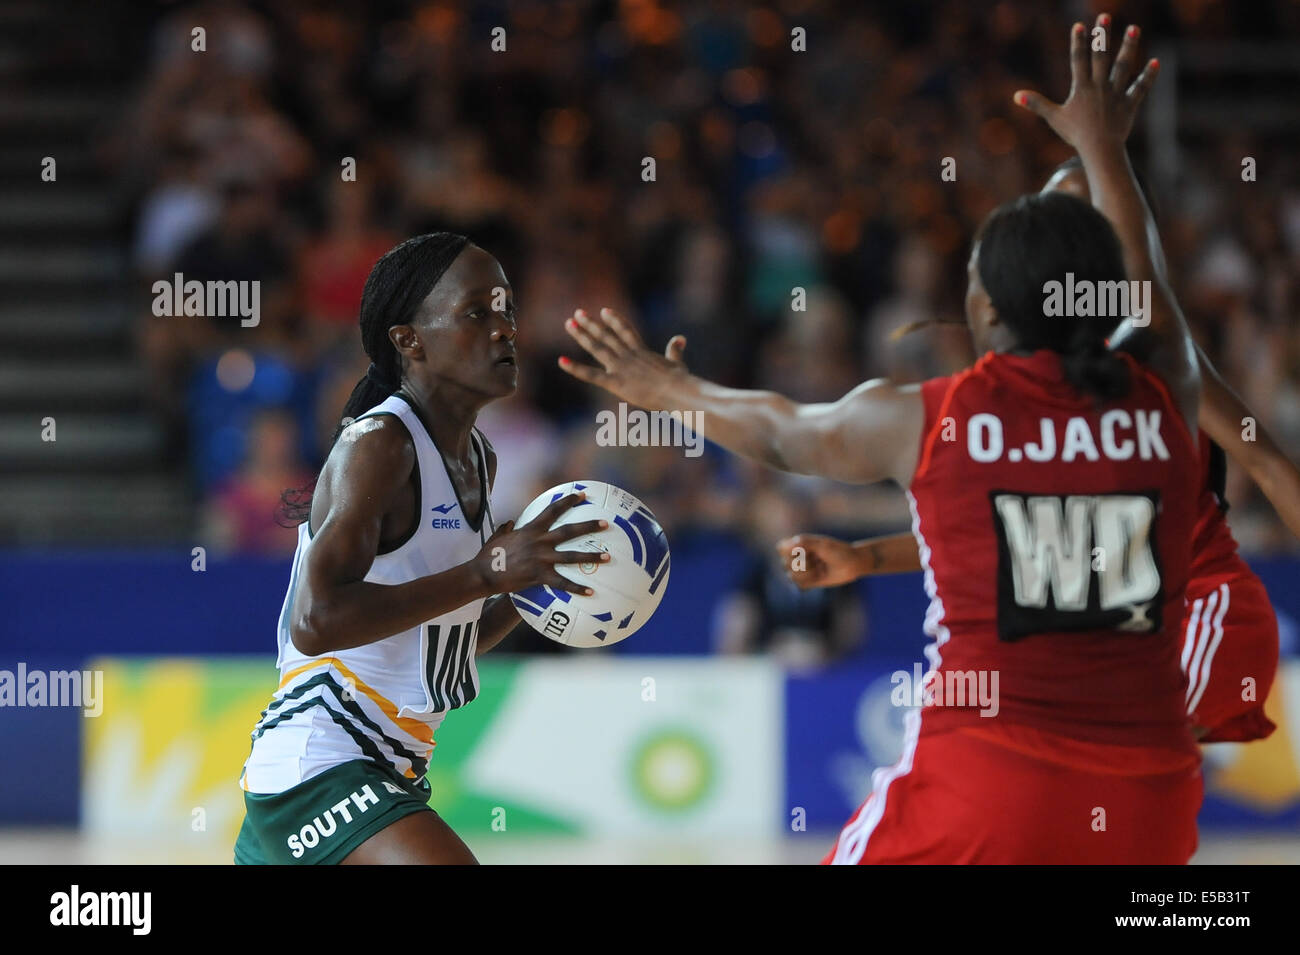 Glasgow, Scotland, UK. 25th July, 2014. Bongiwe Msomi of South Africa during the netball match between South Africa - Stock Image